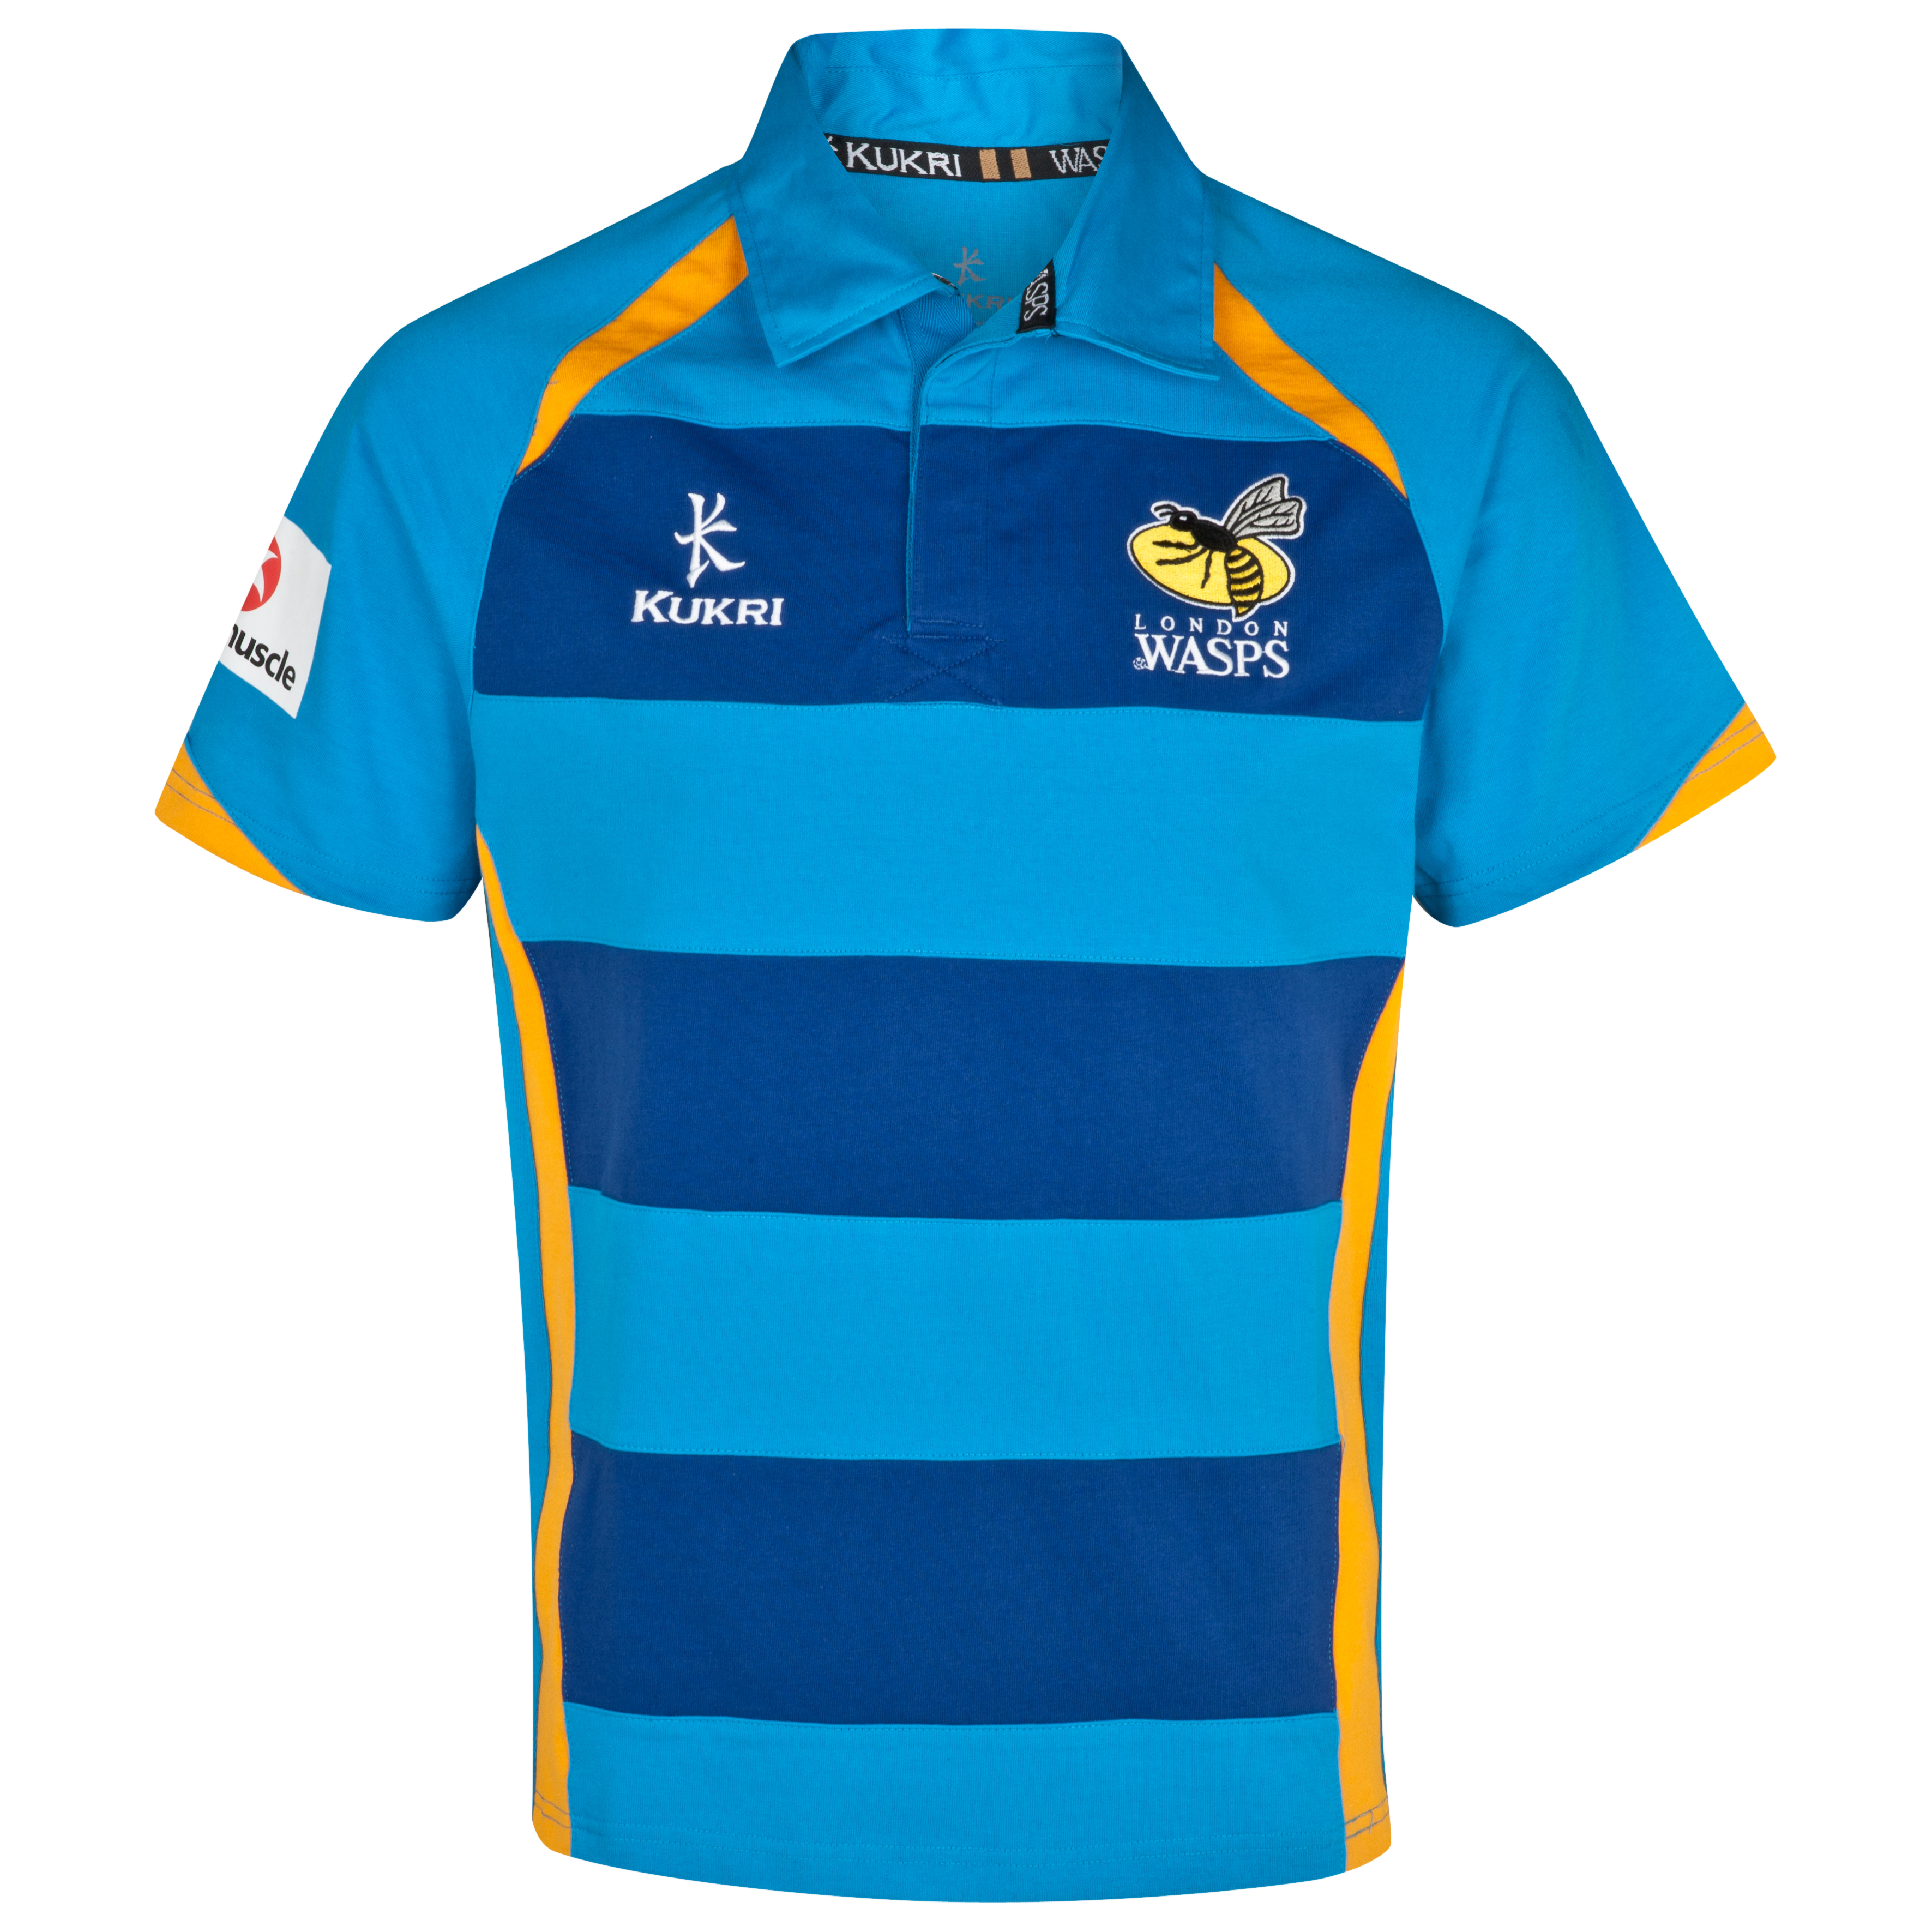 Wasps Supporters Change Shirt 2012/13